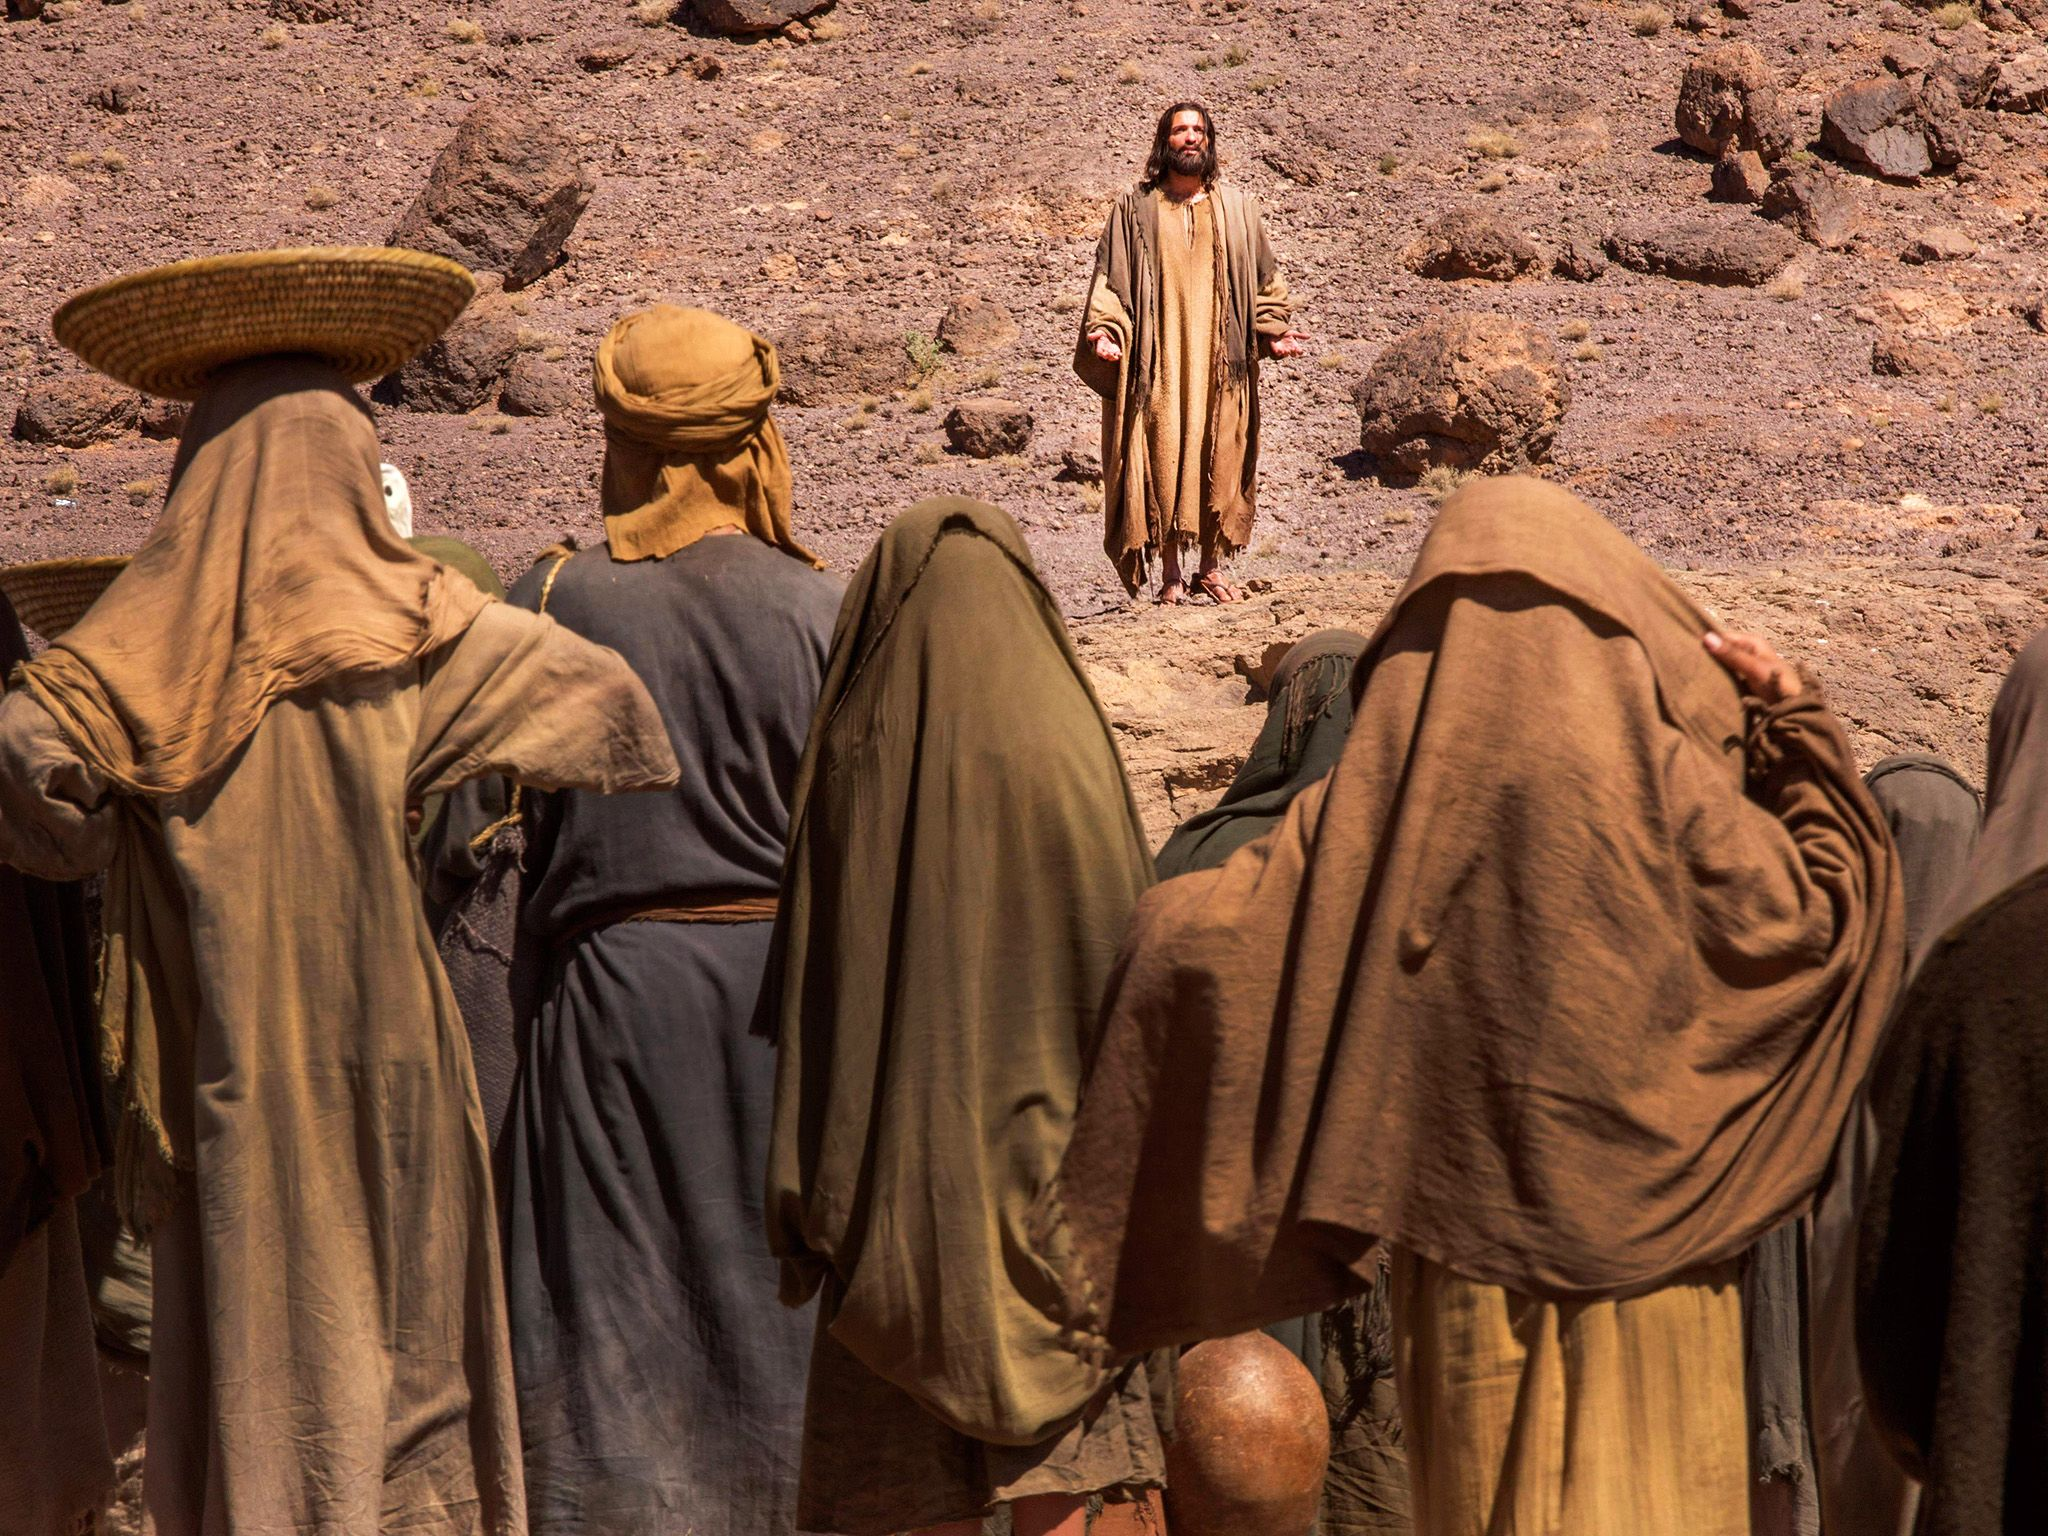 National Geographic Channel's Killing Jesus. This image is from Killing Jesus. [Photo of the day - March 2015]